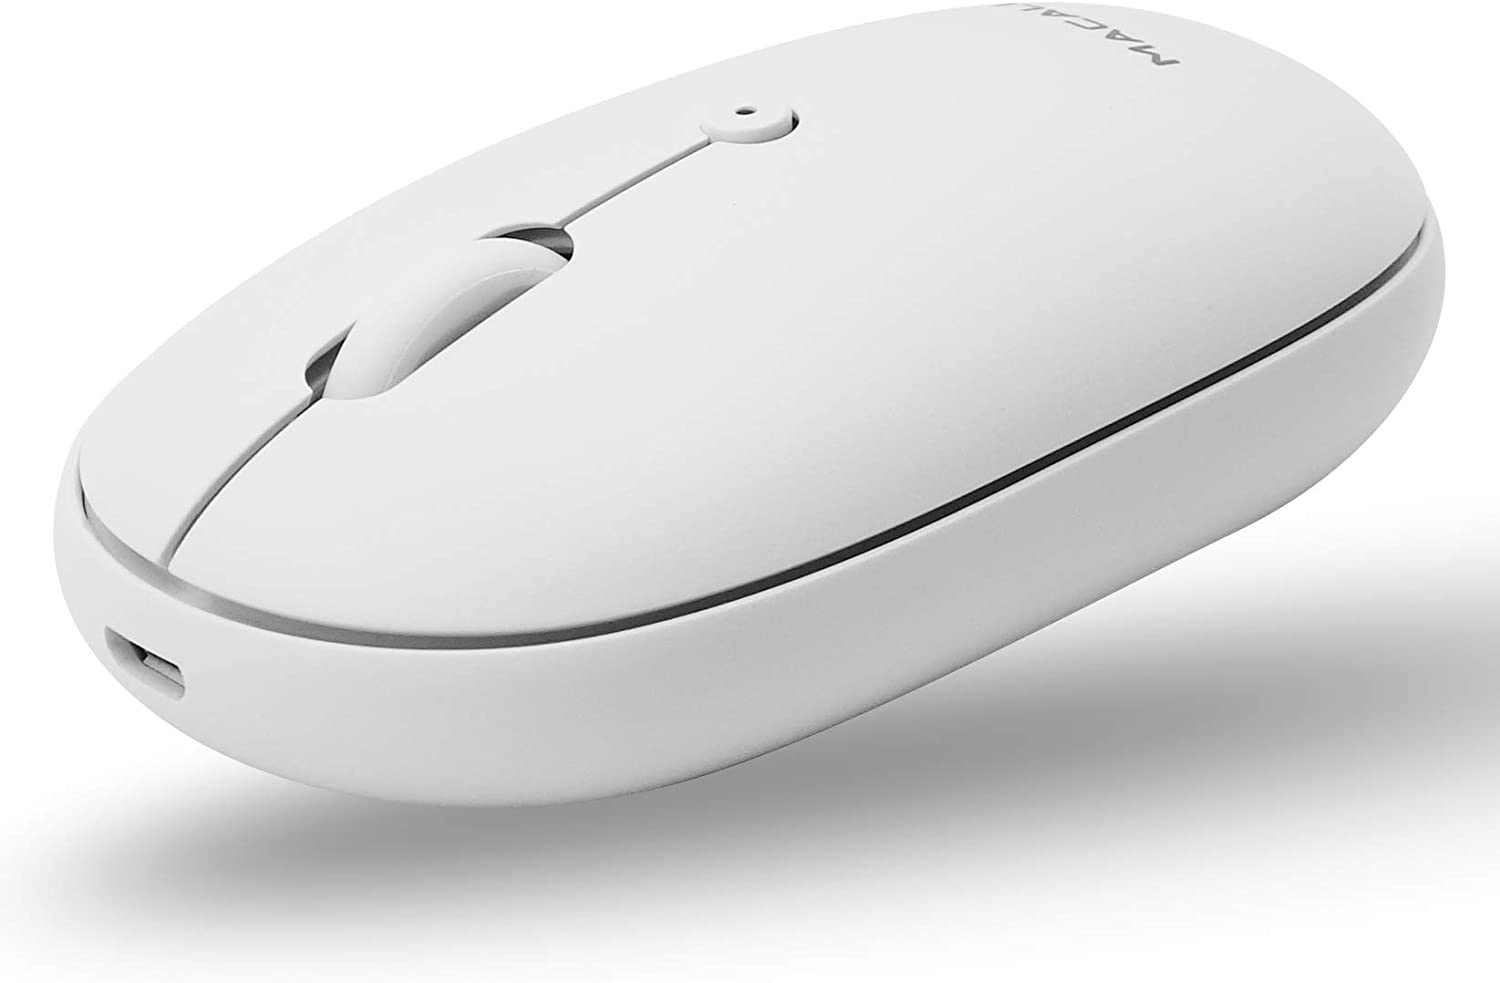 Macally Wireless Bluetooth Mouse Rechargeable - Simple Workspace Necessity - Quiet Click Buttons, 300mAh Battery, and Charging Cable - Silent Wireless Mouse for Mac |PC|iOS|Android - DPI 800/1200/1600